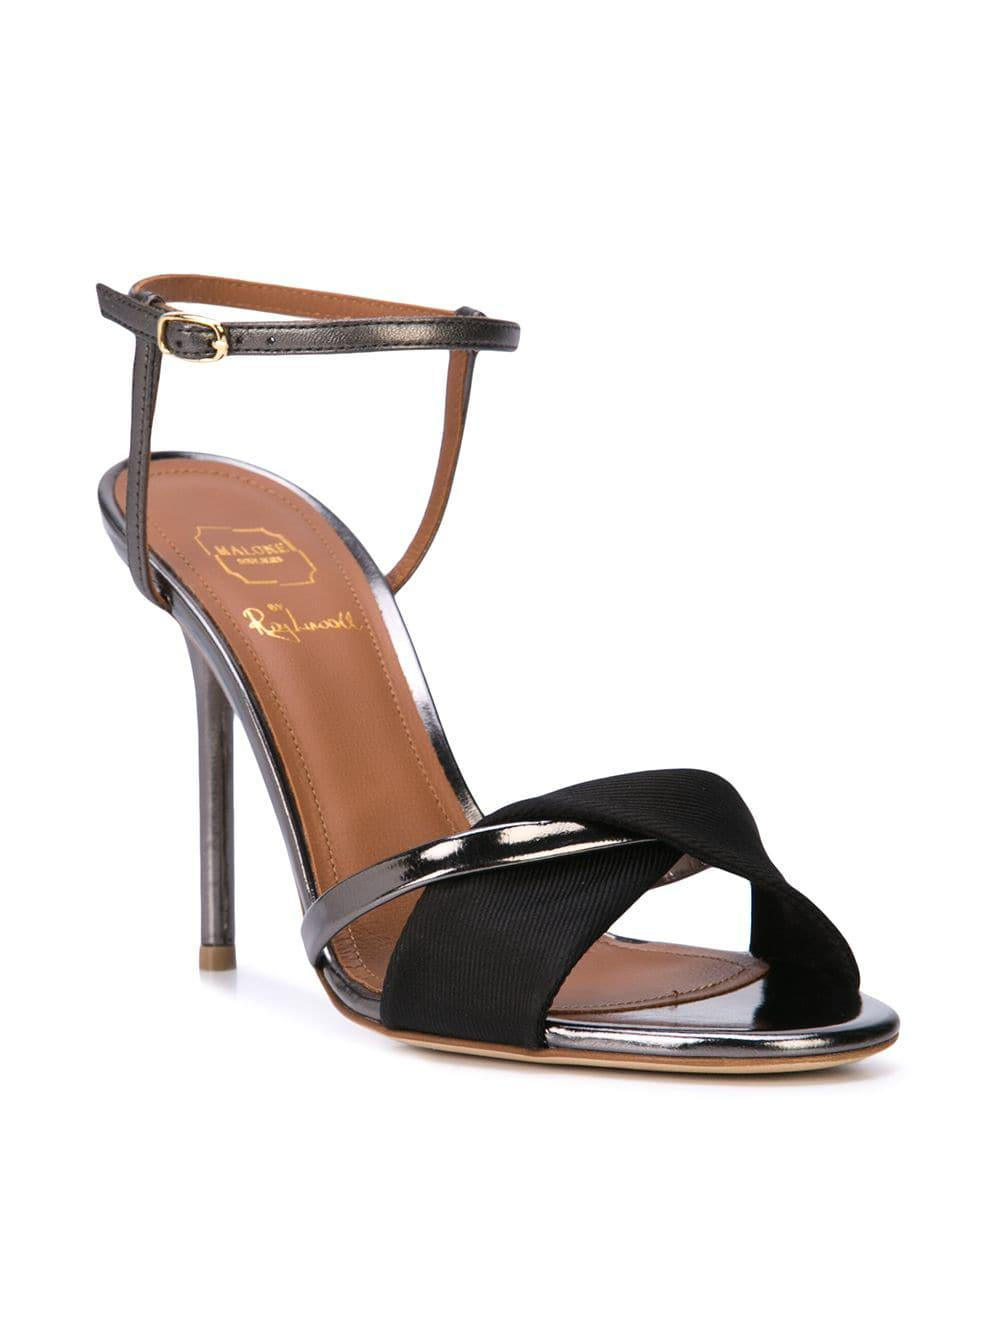 edc5e58990dc Malone Souliers Ankle Strap Sandals in Black - Lyst